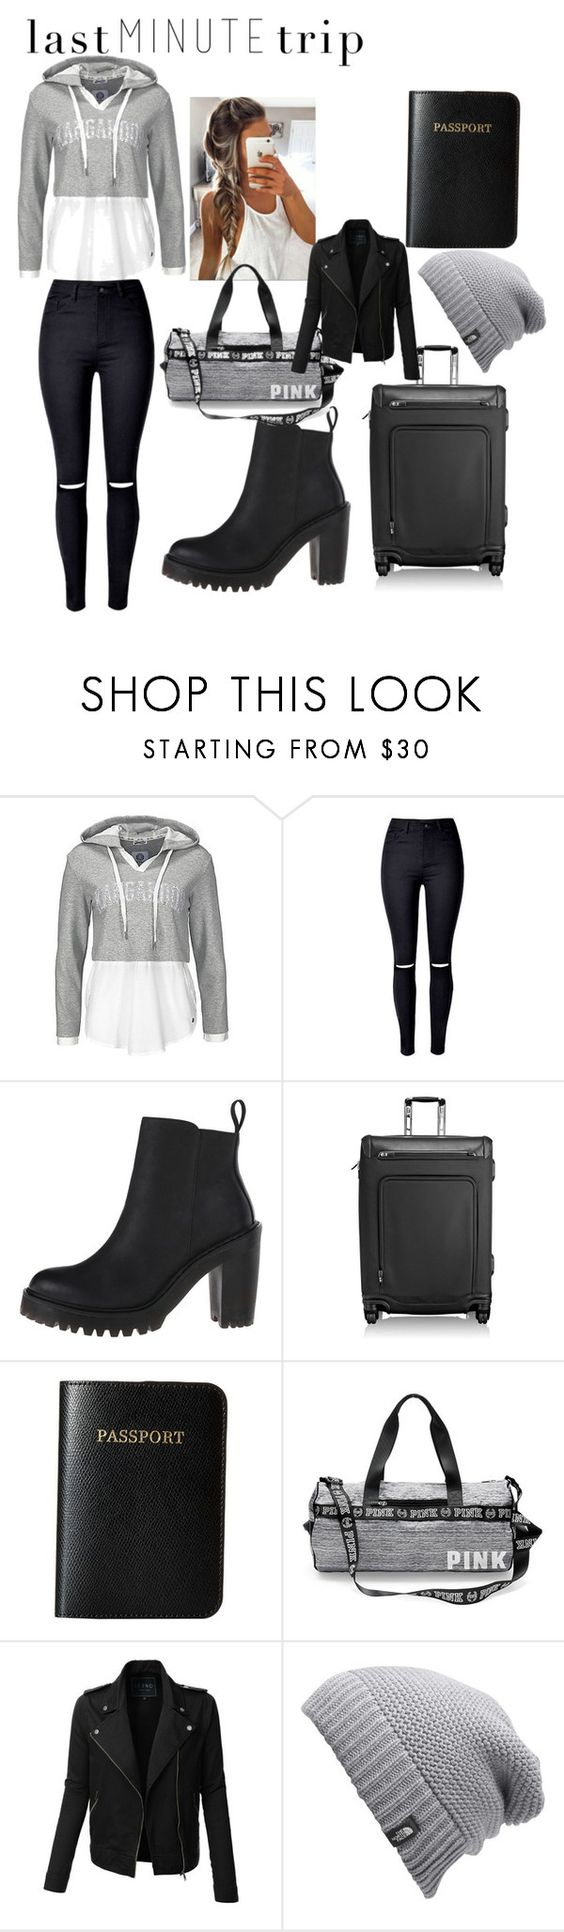 """""""Last minute trip to the airport"""" by sportydiva782 ❤ liked on Polyvore featuring Dr. Martens, Tumi, Vera Bradley, LE3NO and The North Face"""